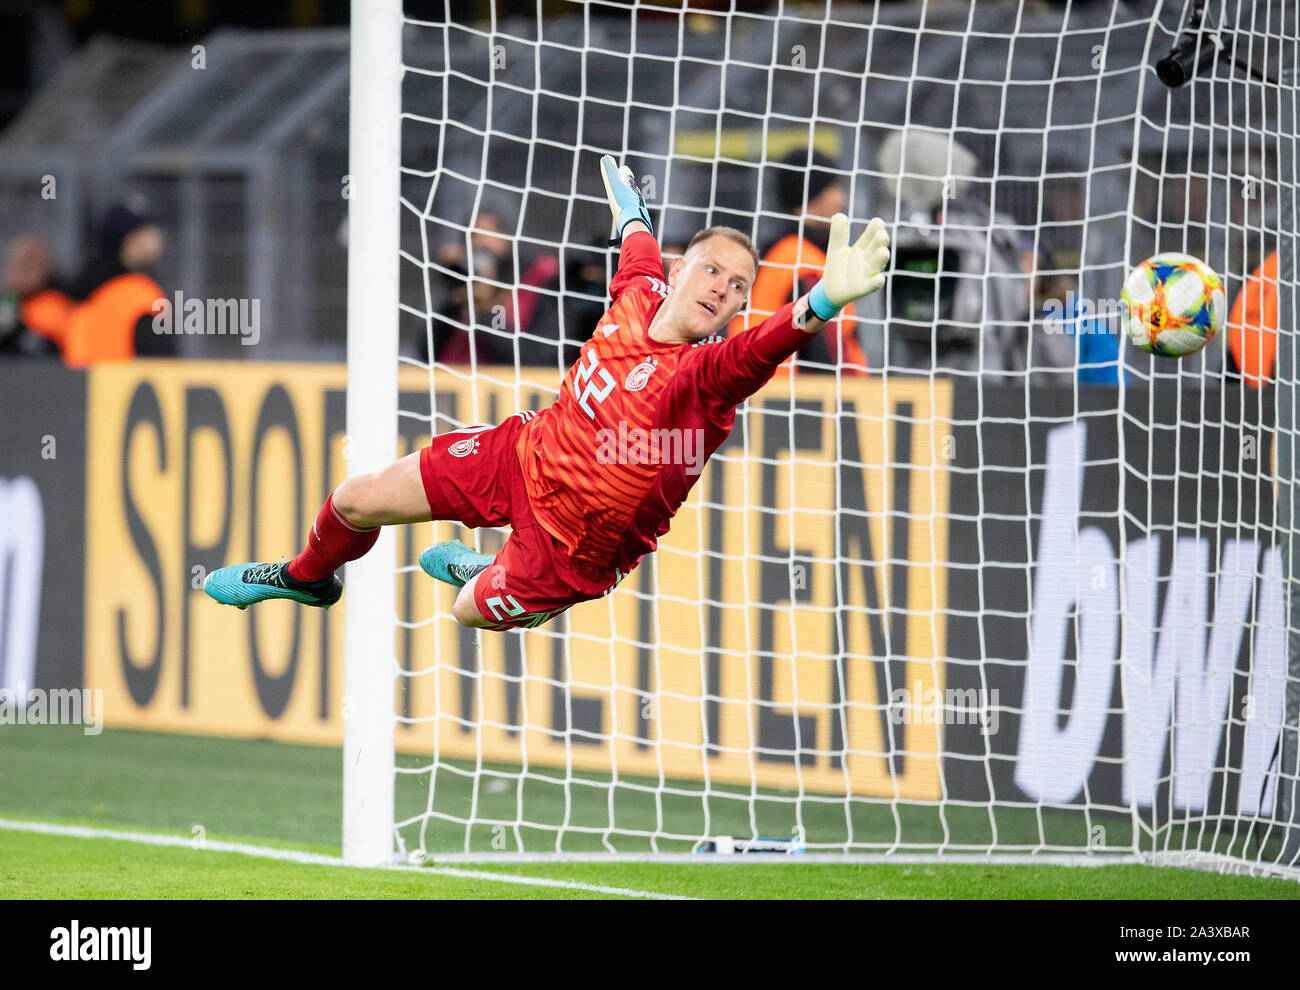 Goal to 2: 1 by Lucas ALARIO (ARG/not pictured) Goalkeeper Marc-Andre TER STEGEN (GER) stretches in vain, Action, Football Laenderpiel, Friendly Match, Germany (GER) - Argentina (ARG), on 09.10.2019 in Dortmund/Germany. ¬ | usage worldwide Stock Photo